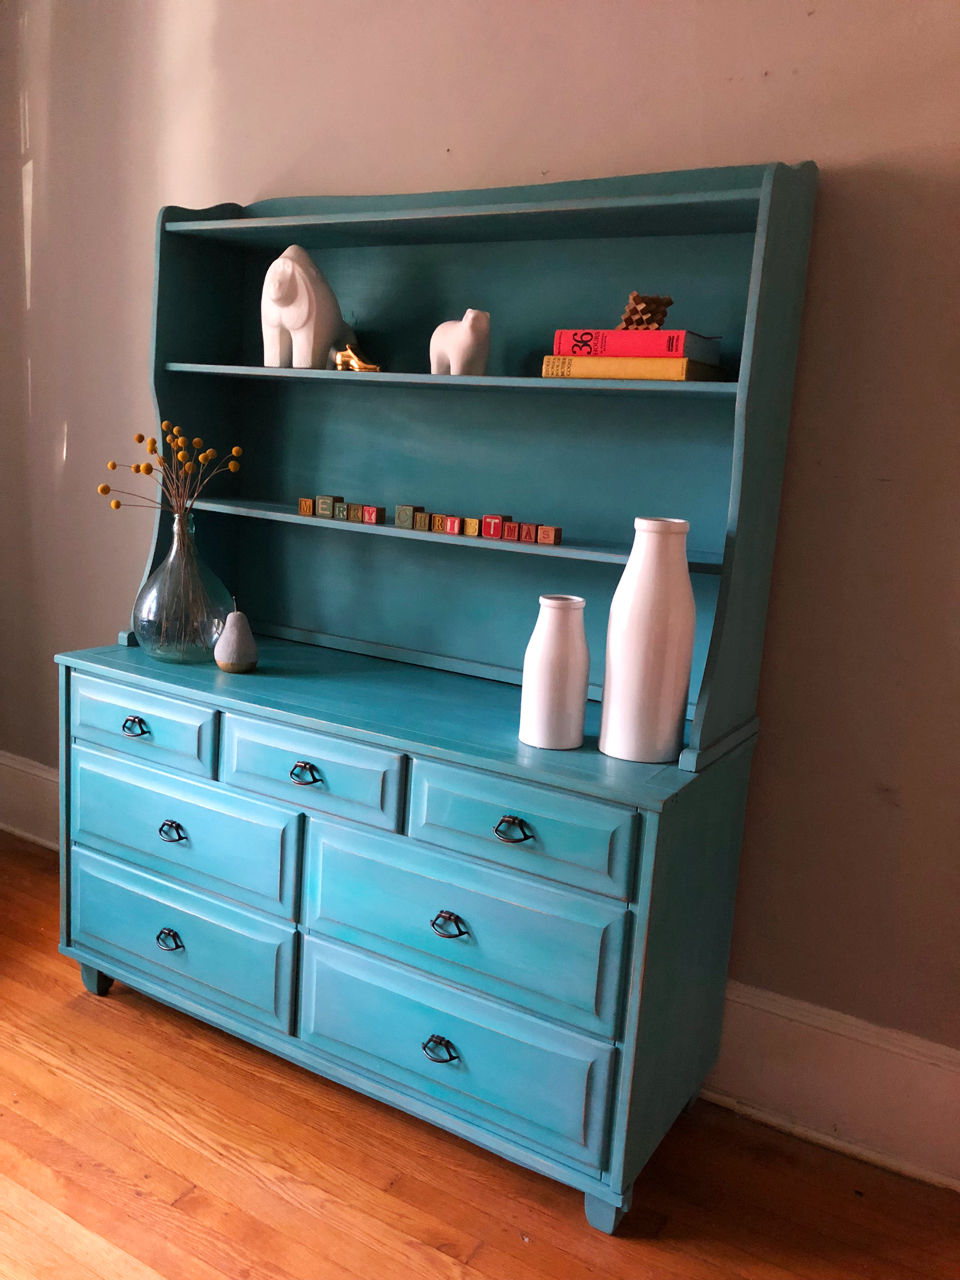 jo-torrijos-a-simpler-design-atlanta-painted-furniture-turquoise-buffet-hutch-6.jpg